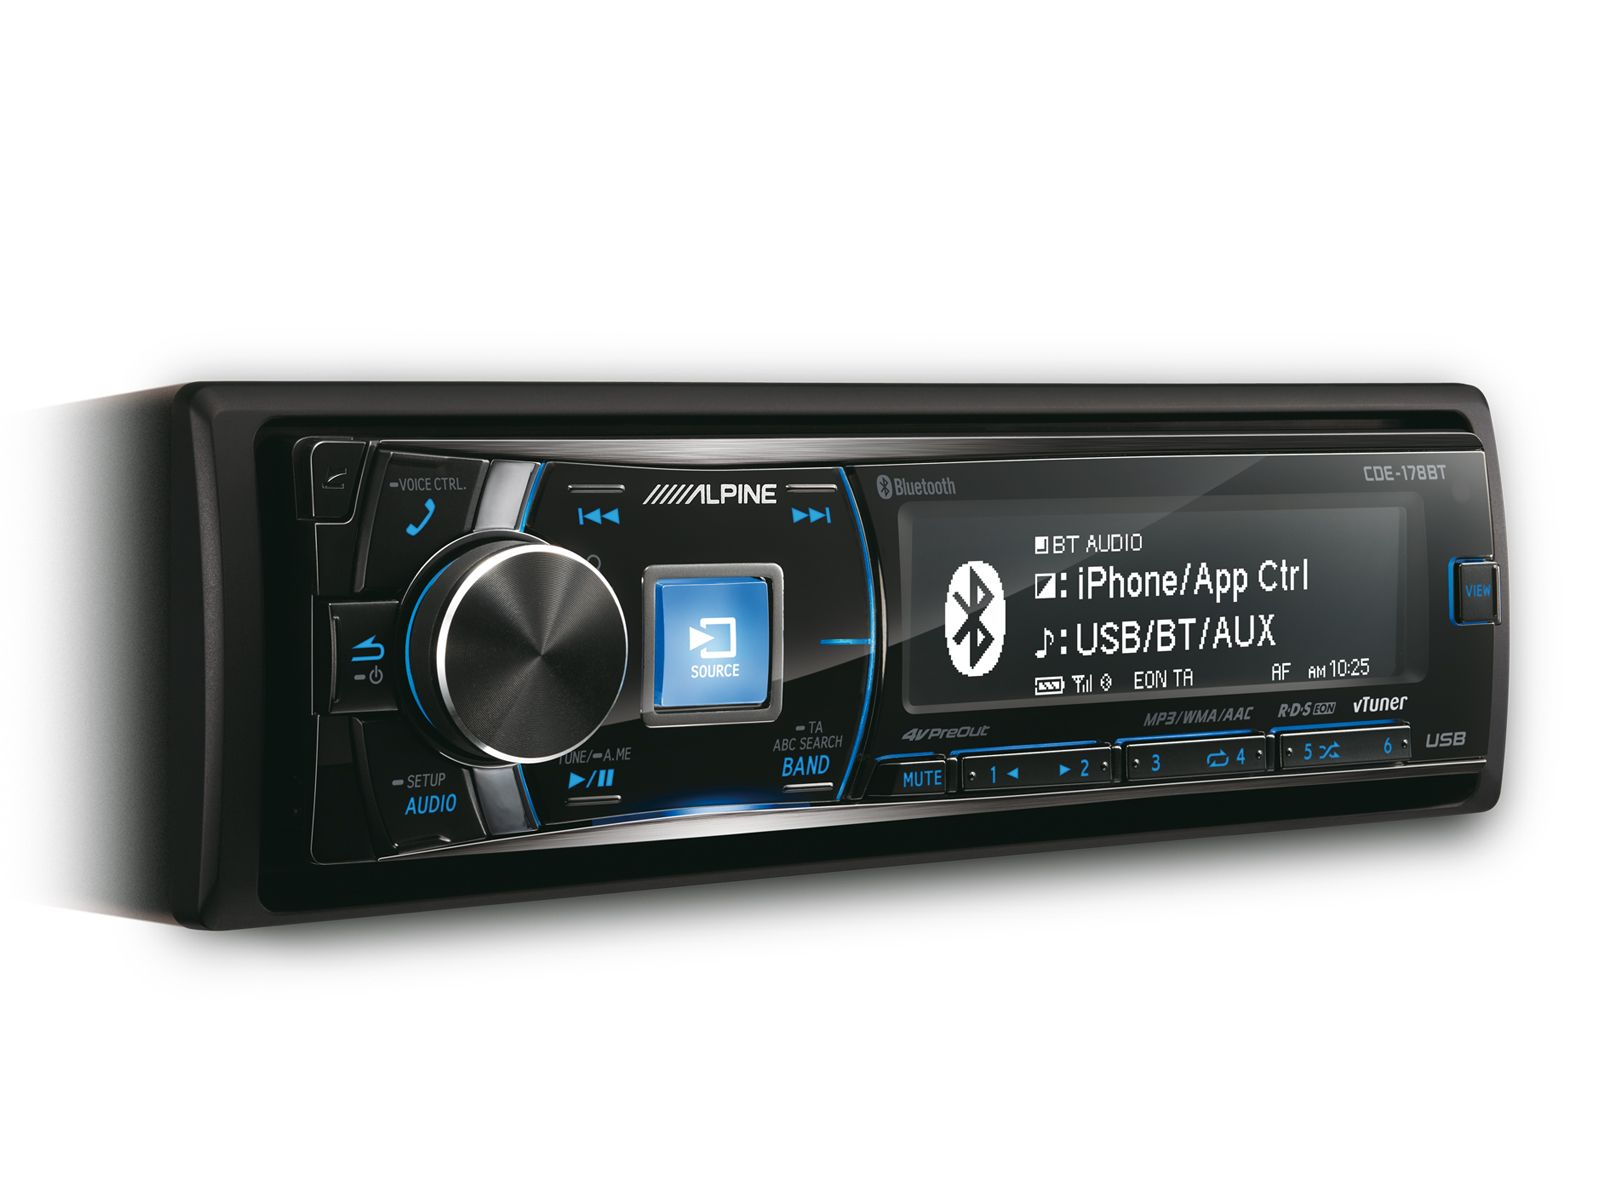 Cd receiver with bluetooth alpine alpine is a leading manufacturer of in car audio equipment mobile multimedia components and in car navigation